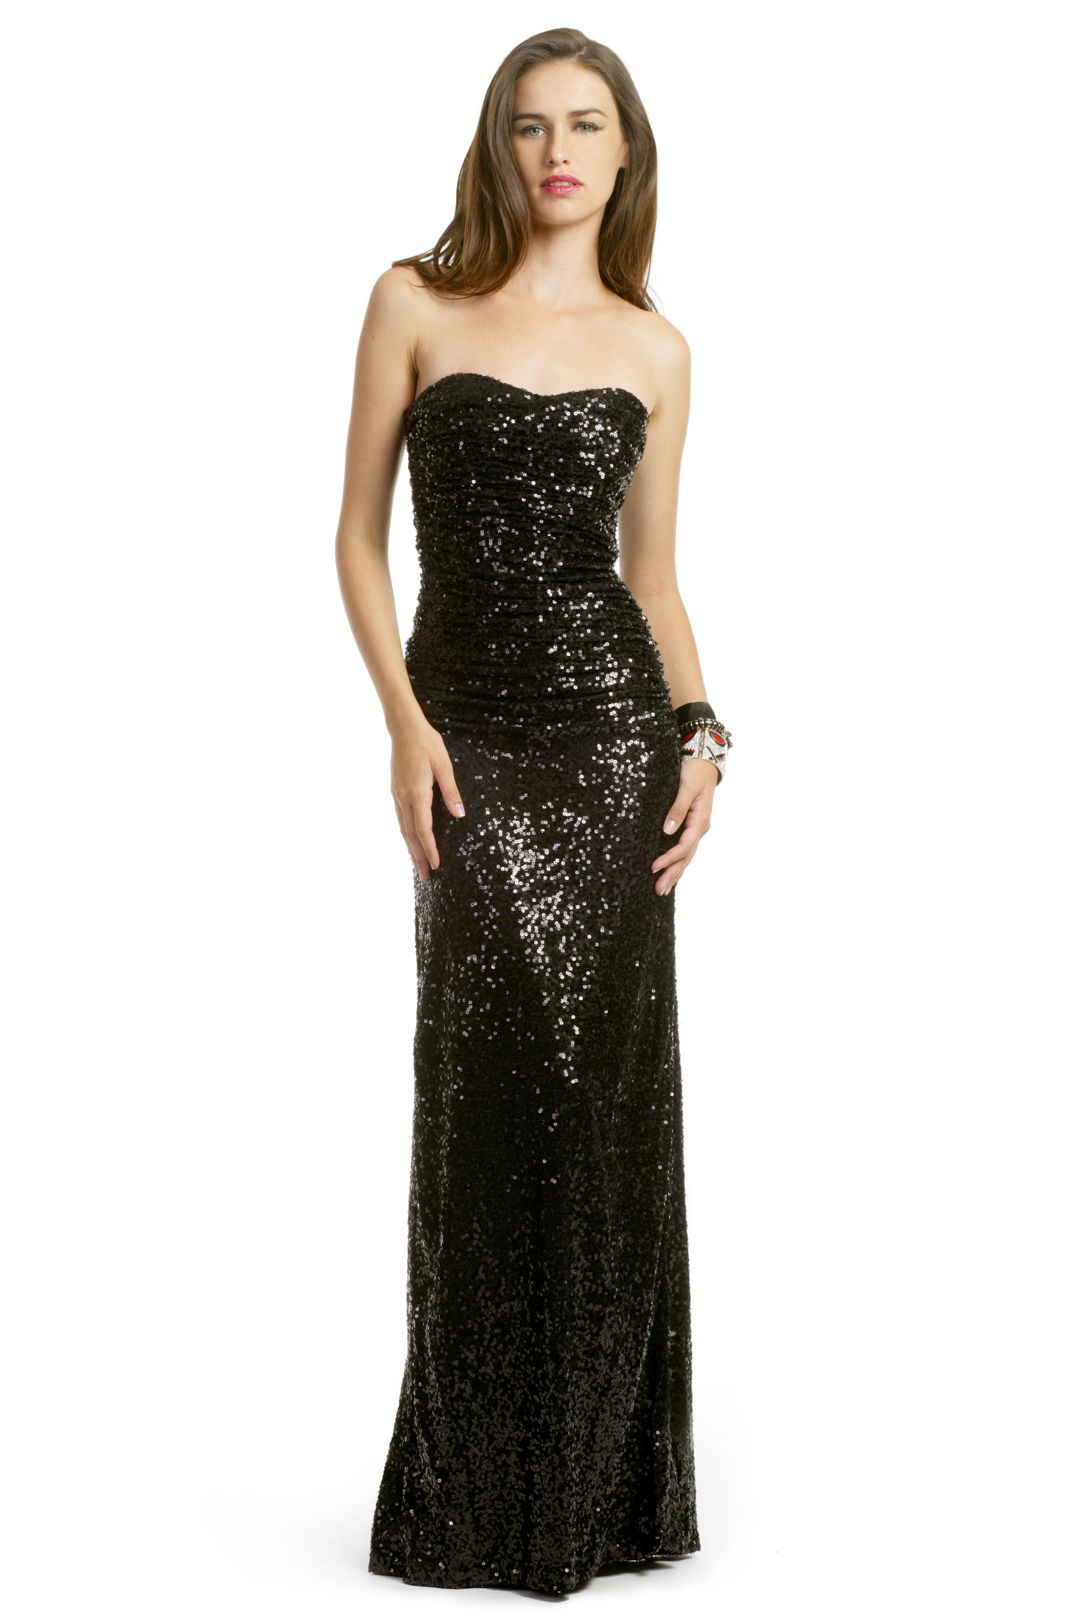 Party all night gown ball gowns pinterest night gown gowns